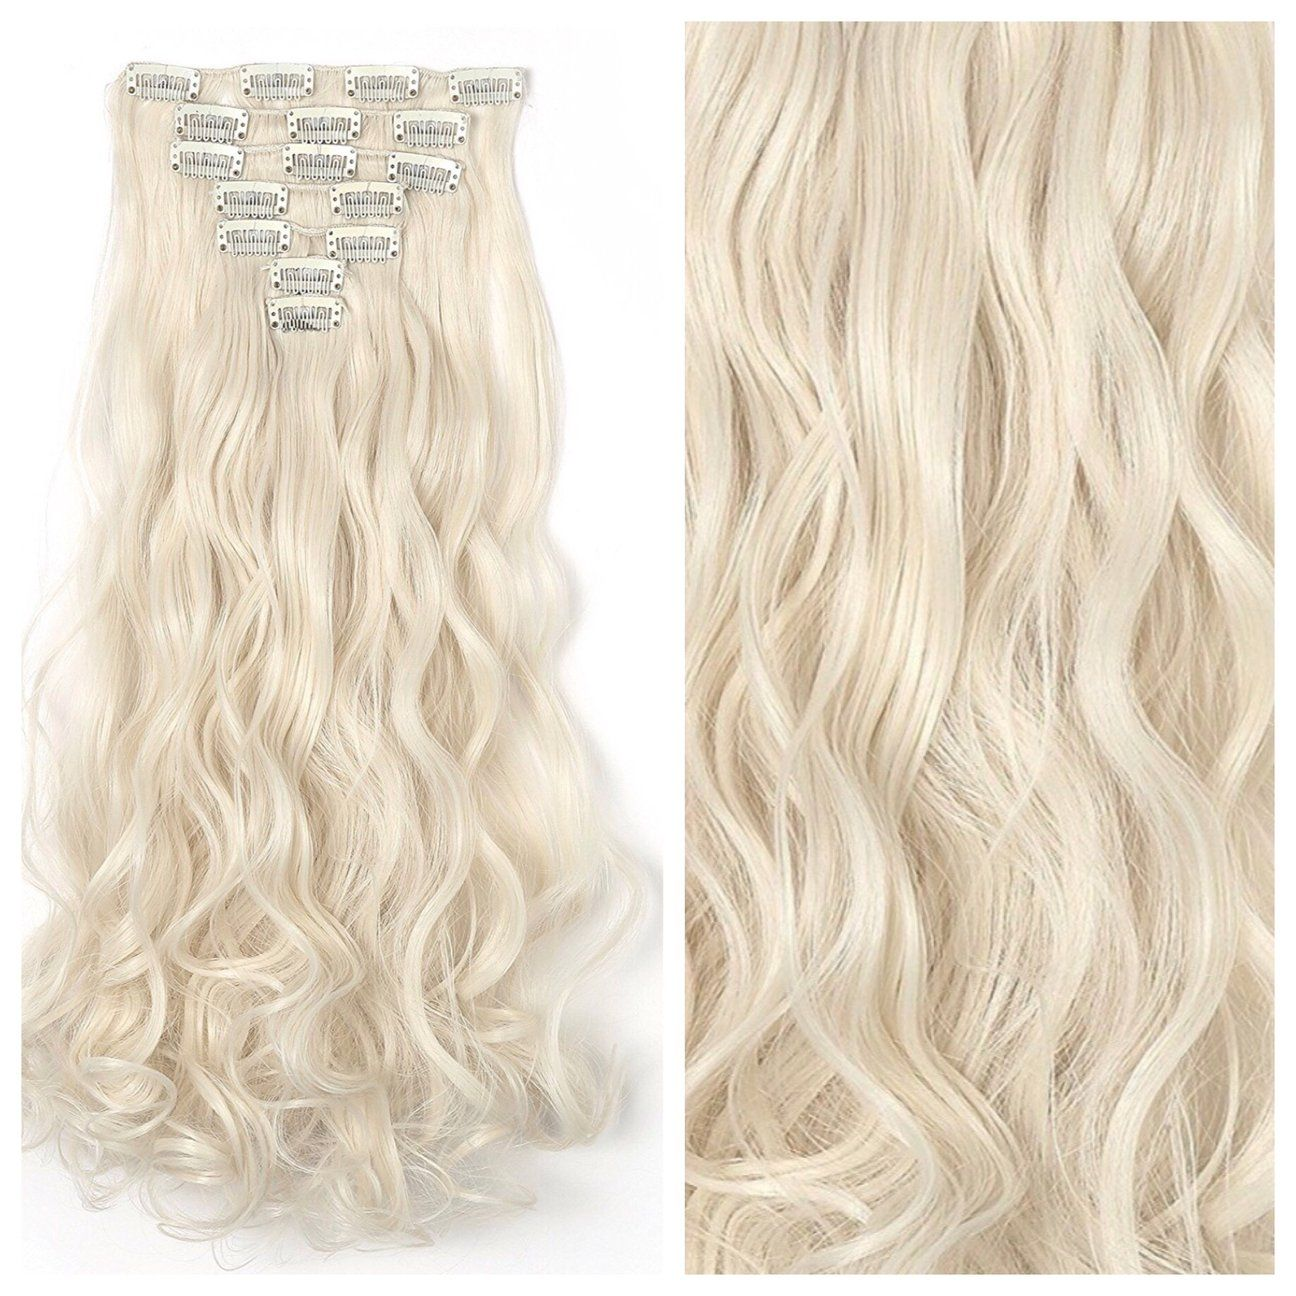 Platinum Blonde Clip In Hair Extensions 24 Curly Remy Human Hair